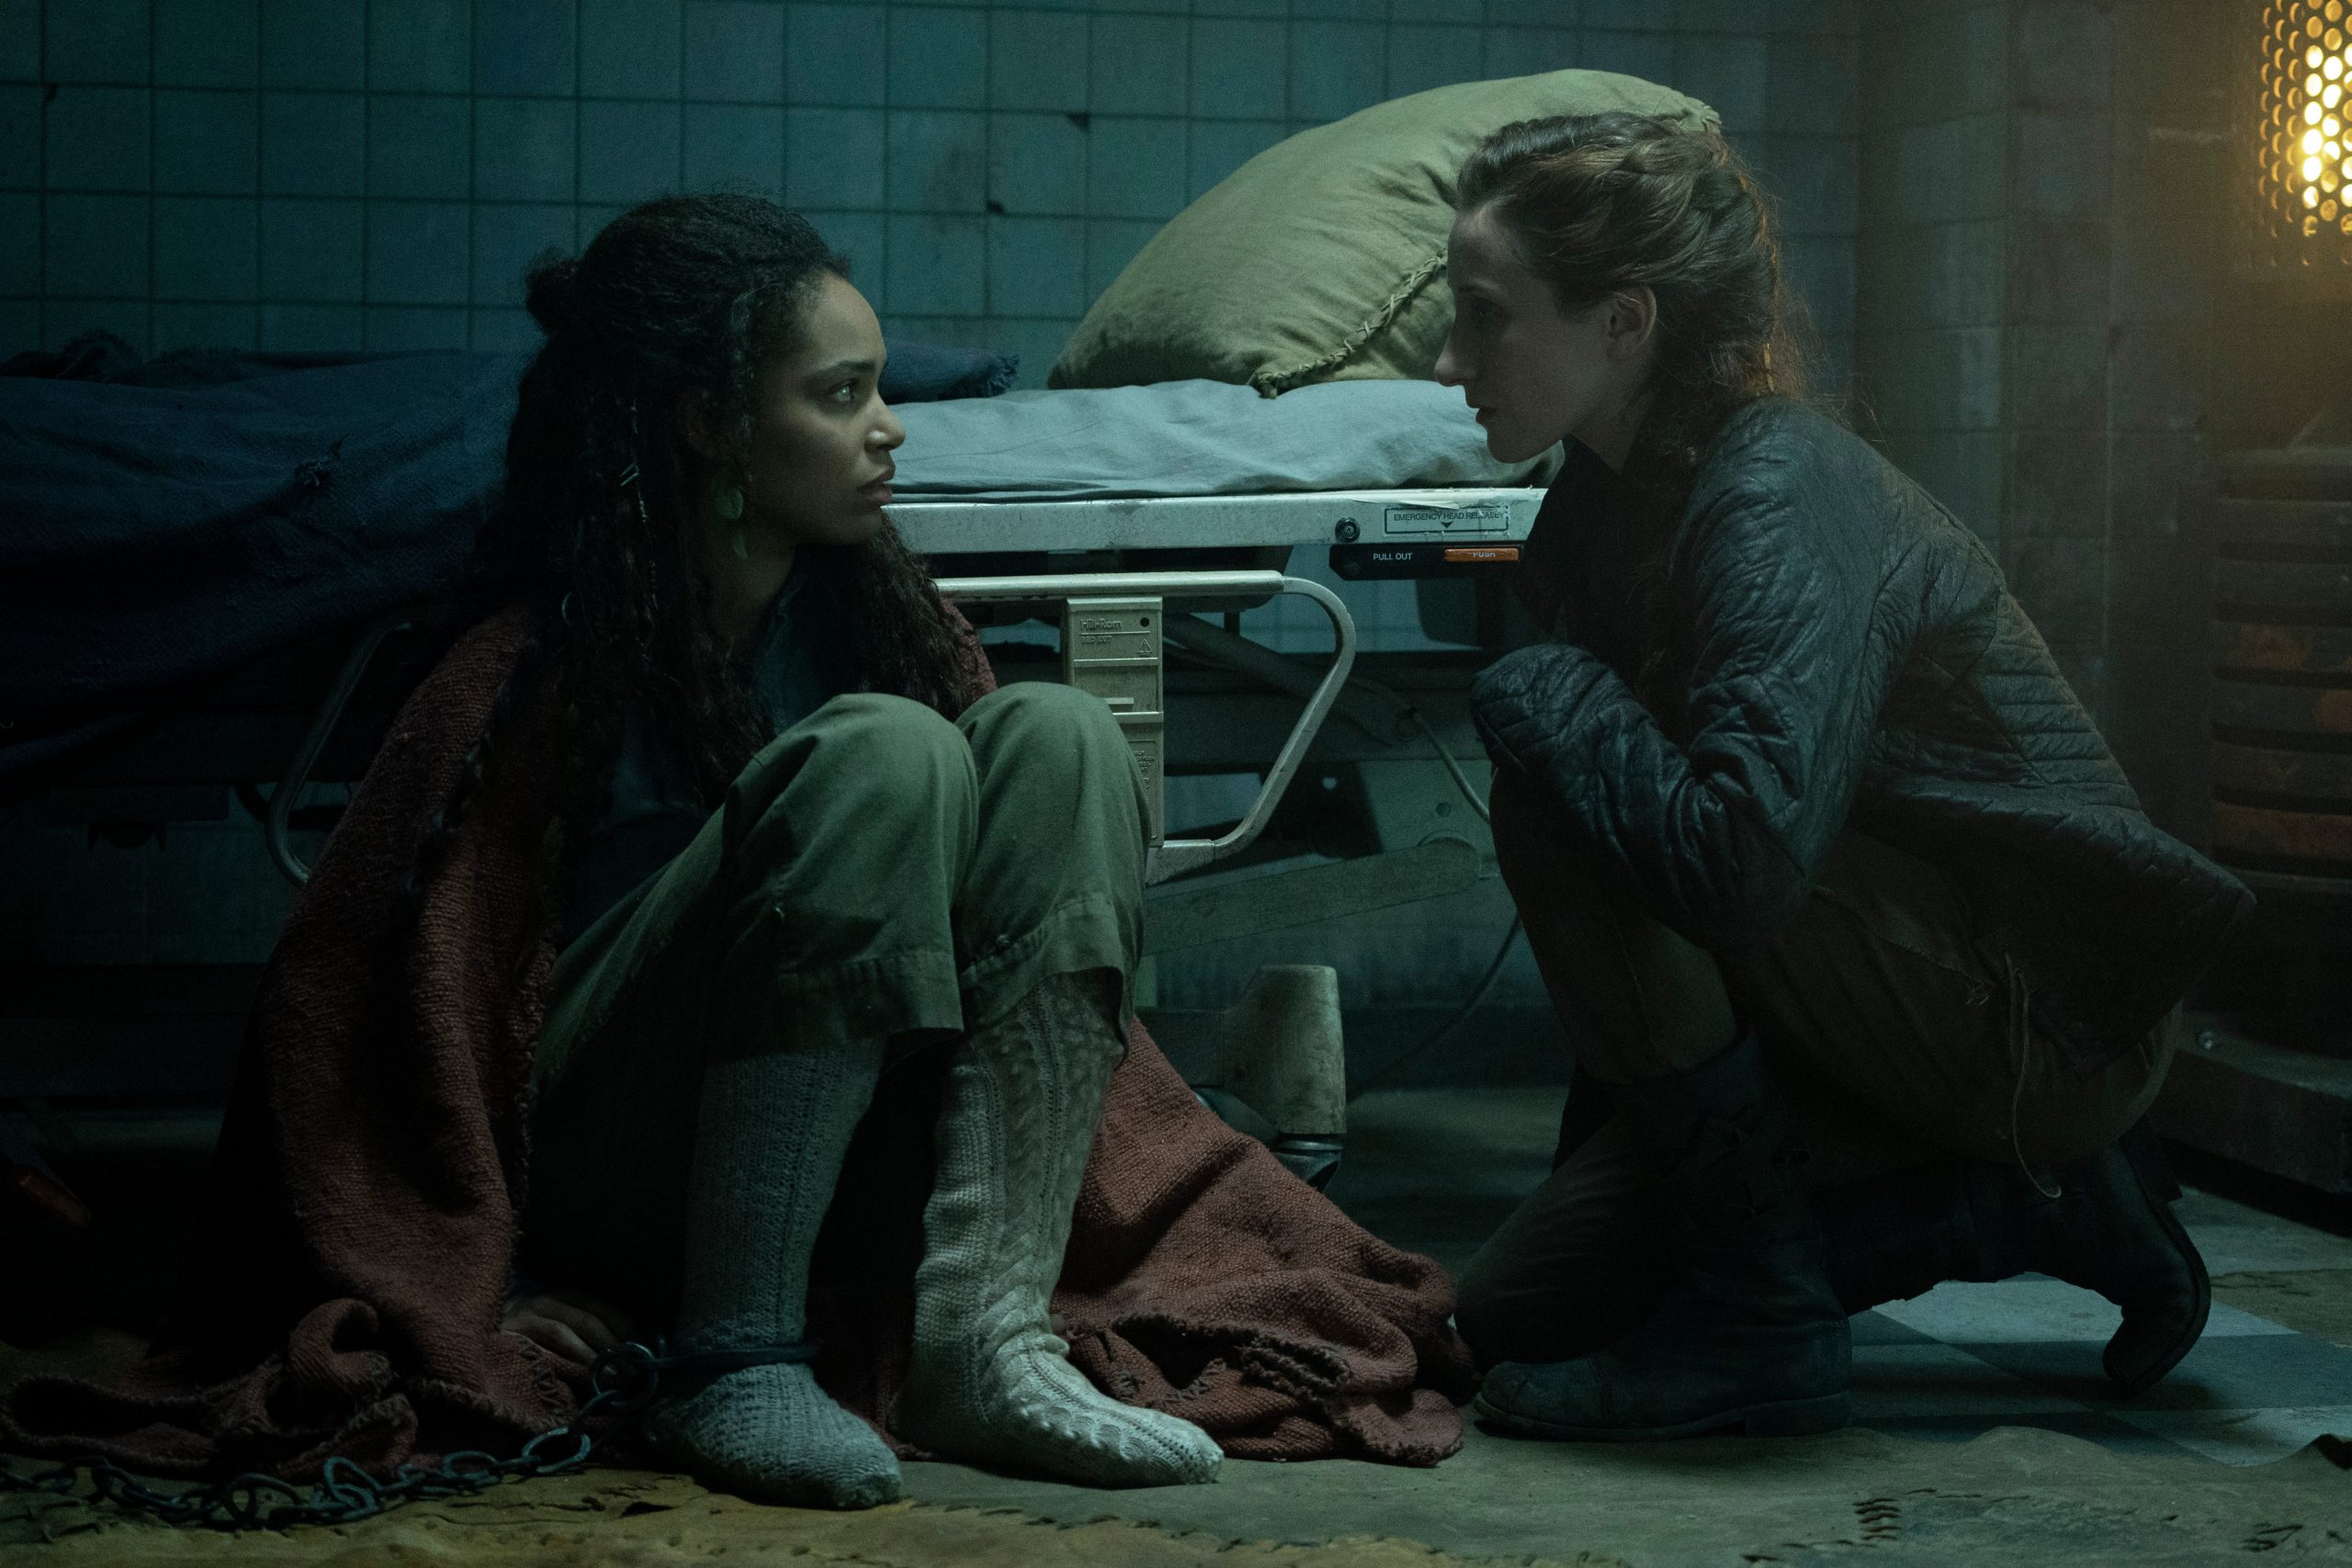 'See' season 2 episode 2 recape/review: Finding love in a hopeless place